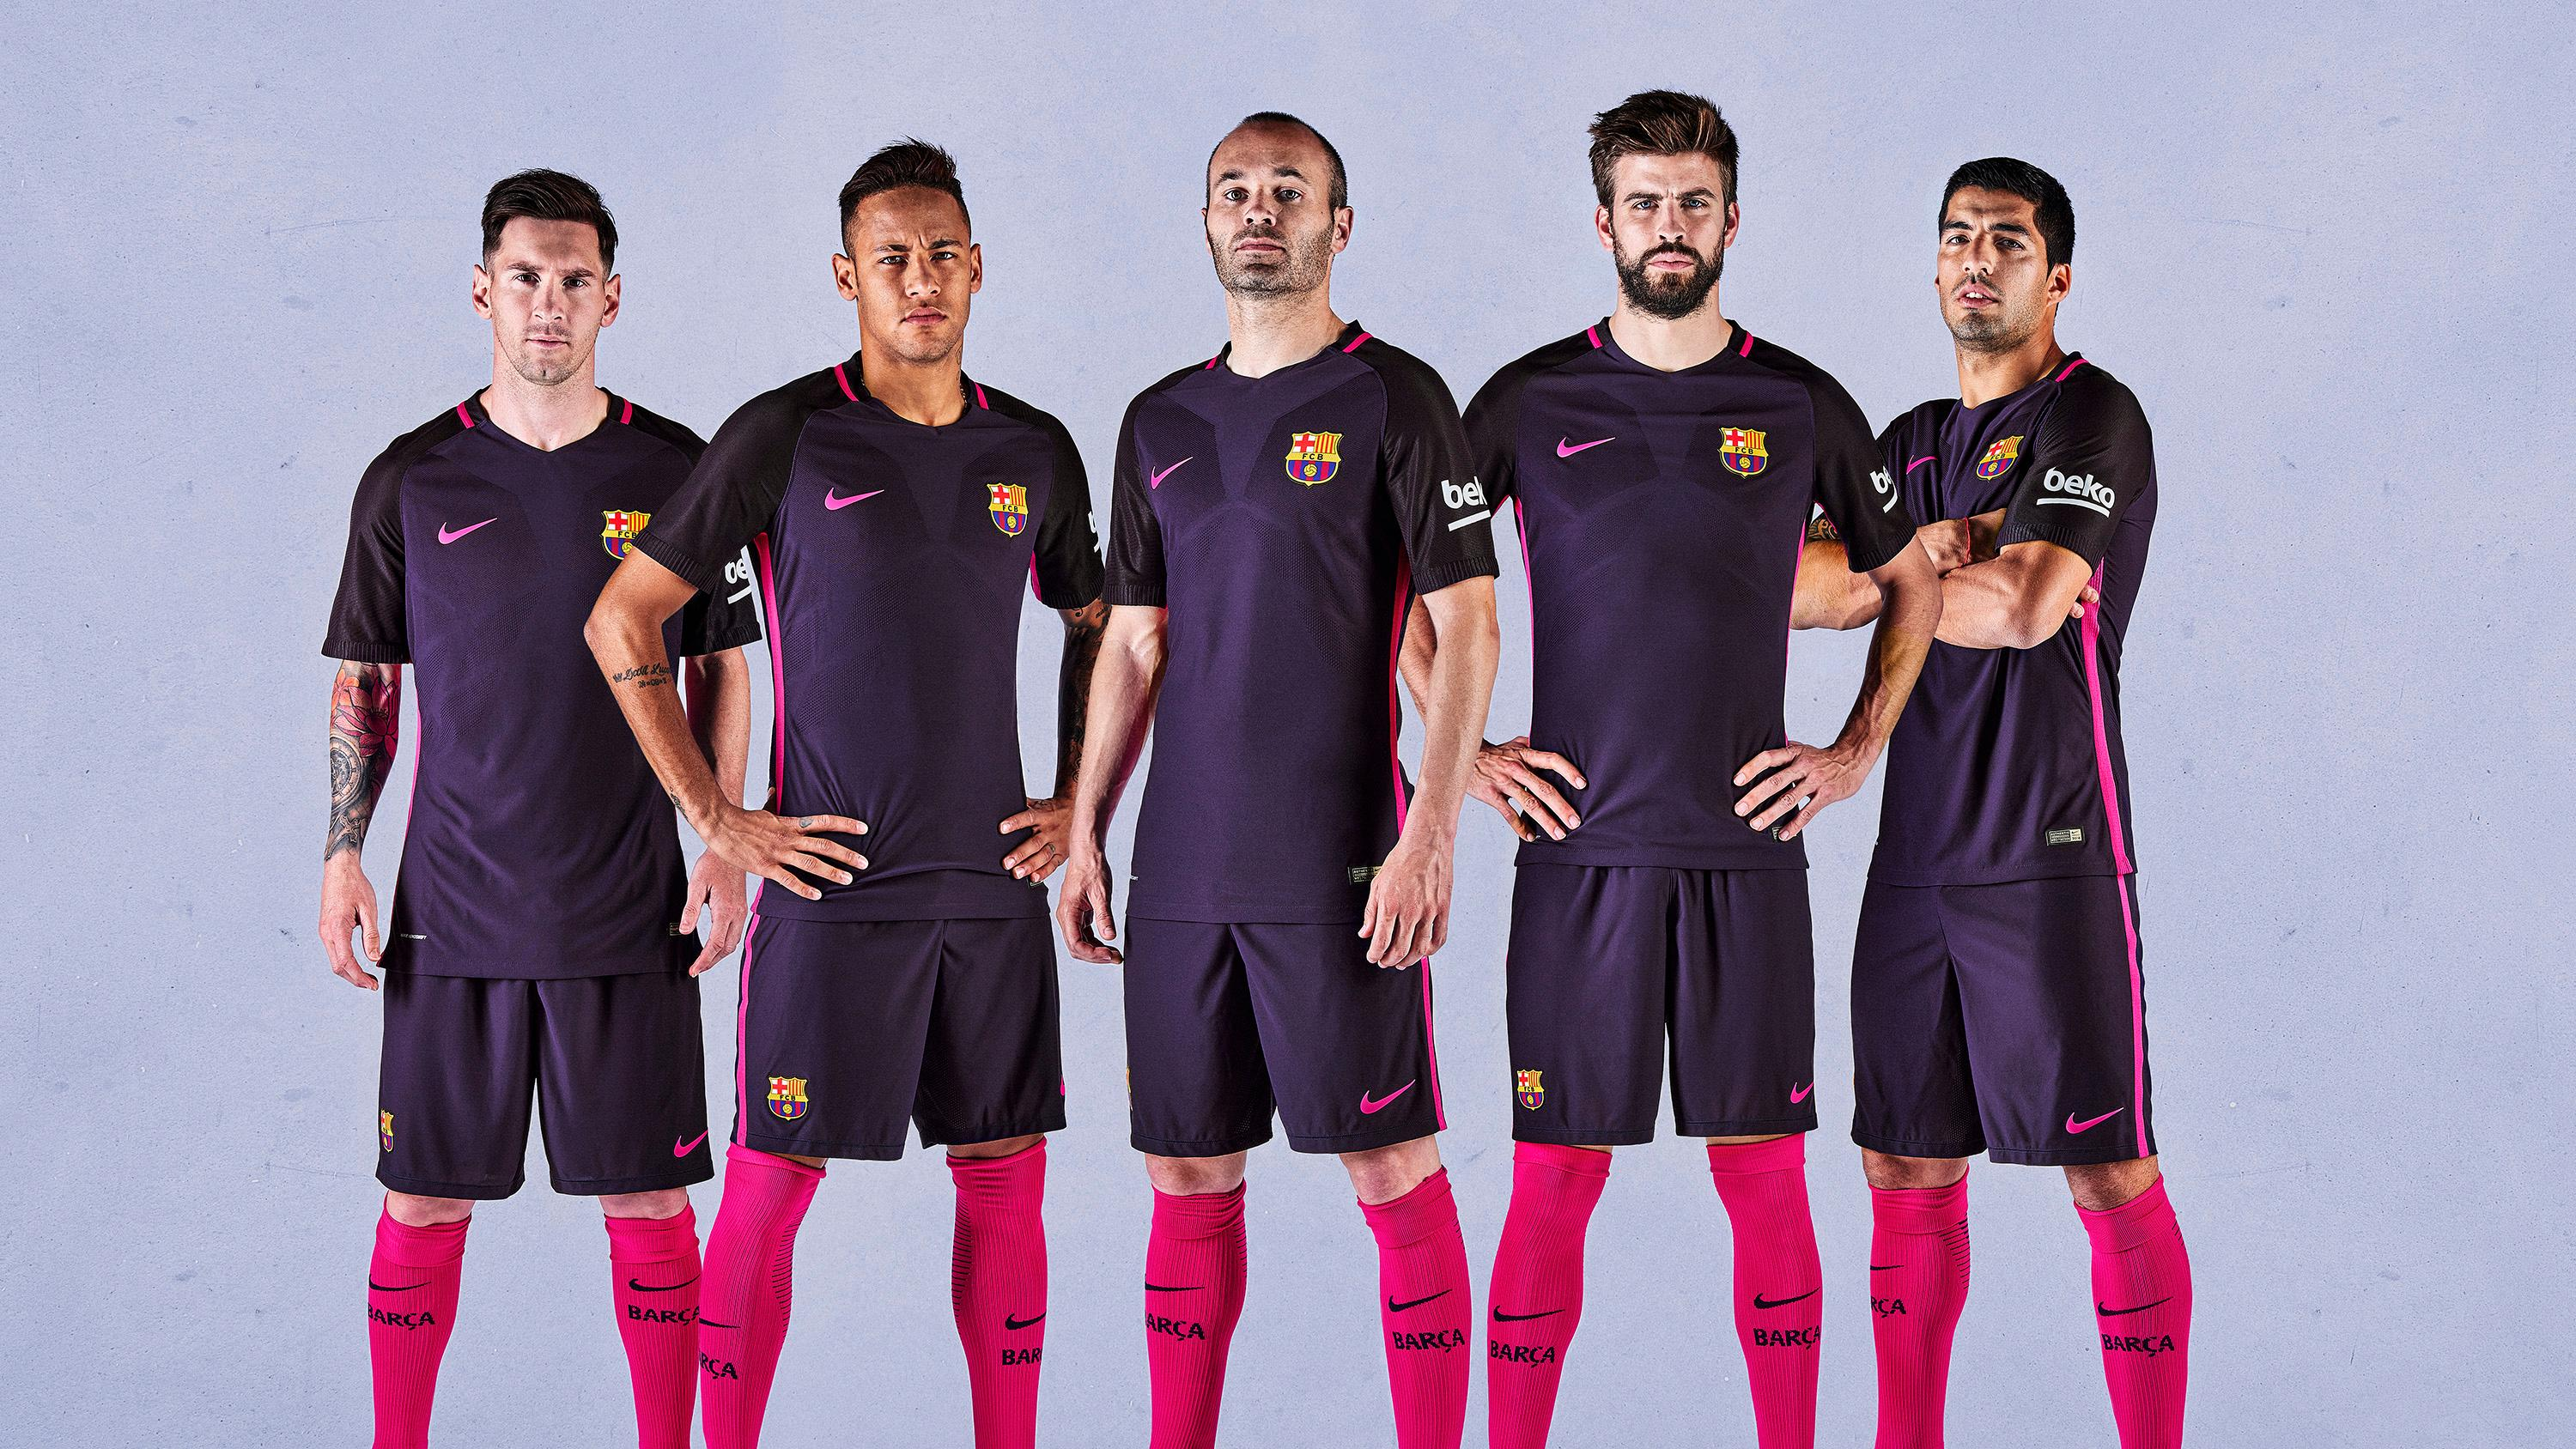 bd93c840c The FC Barcelona away kit for 2016 17 will be purple